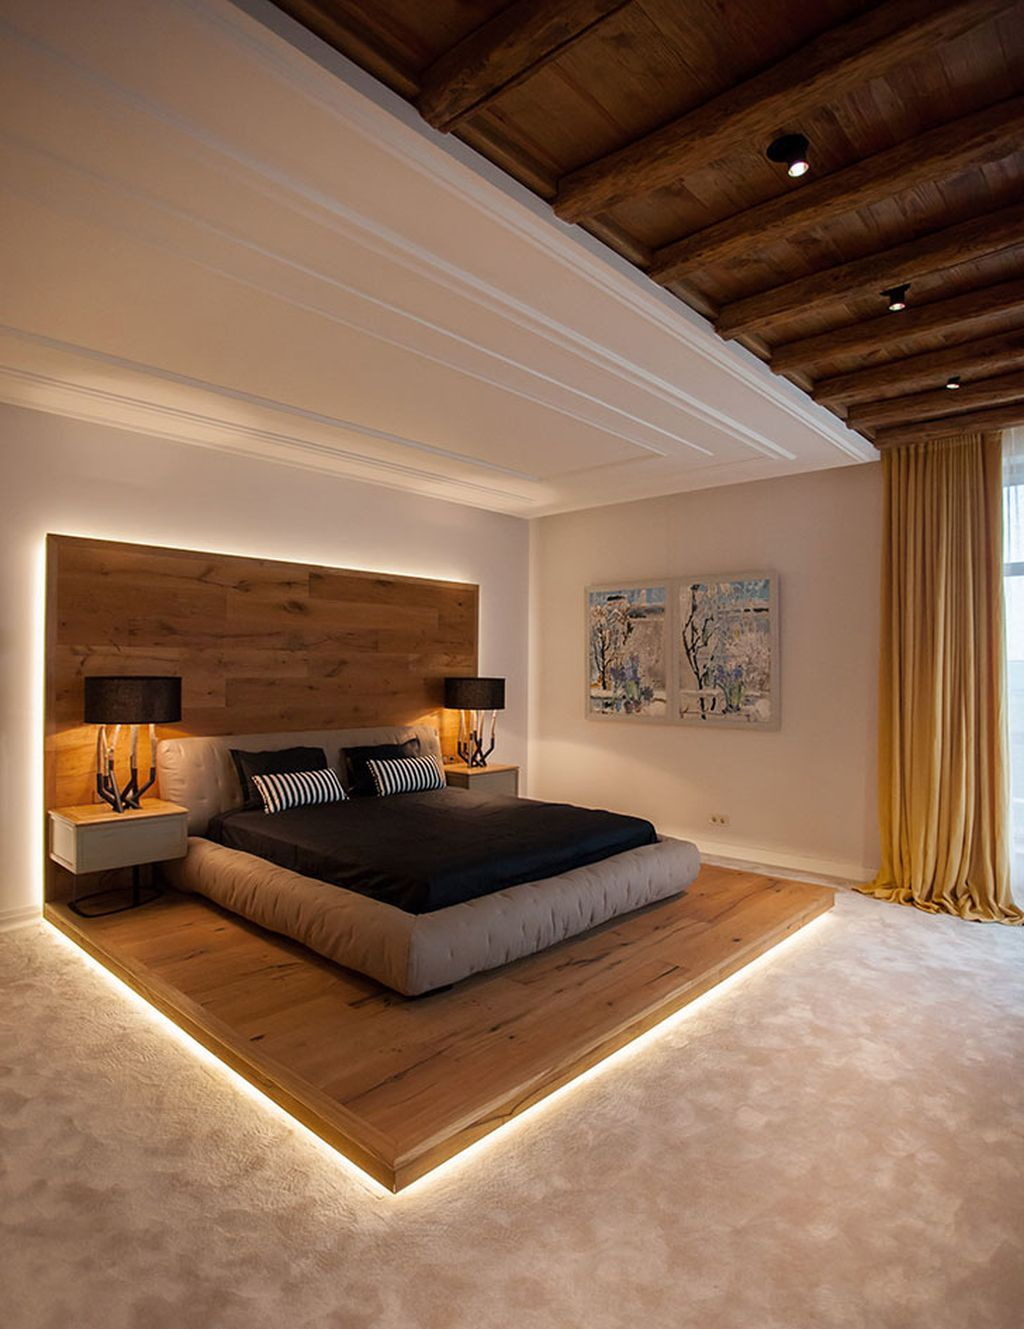 Cool 42 Minimalist Bedroom Ideas For Couple More At Http Dailypatio Com 2017 12 22 42 Min Luxurious Bedrooms Modern Bedroom Design Minimalist Bedroom Design